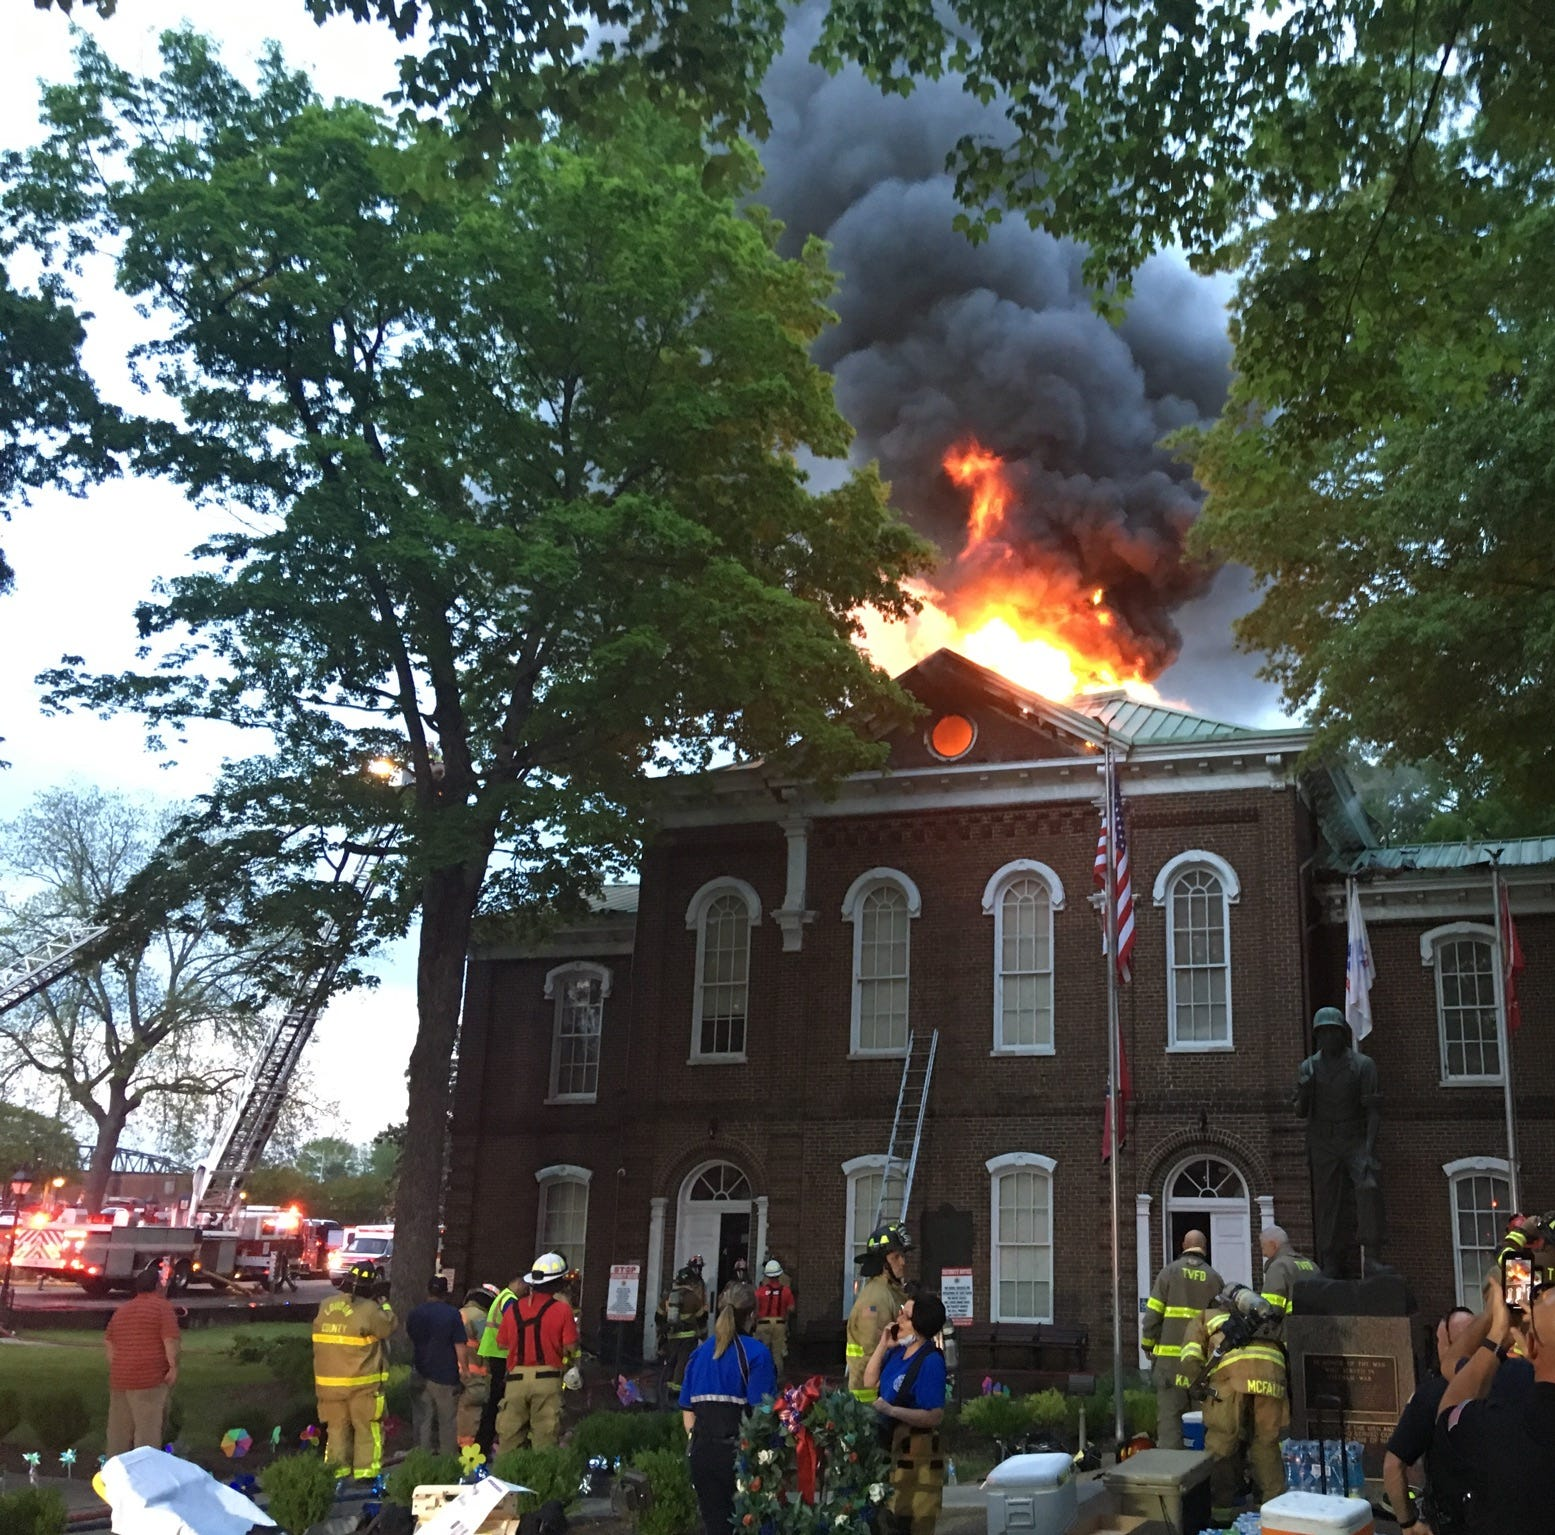 Loudon County Courthouse fire: Flames engulf roof and bell tower